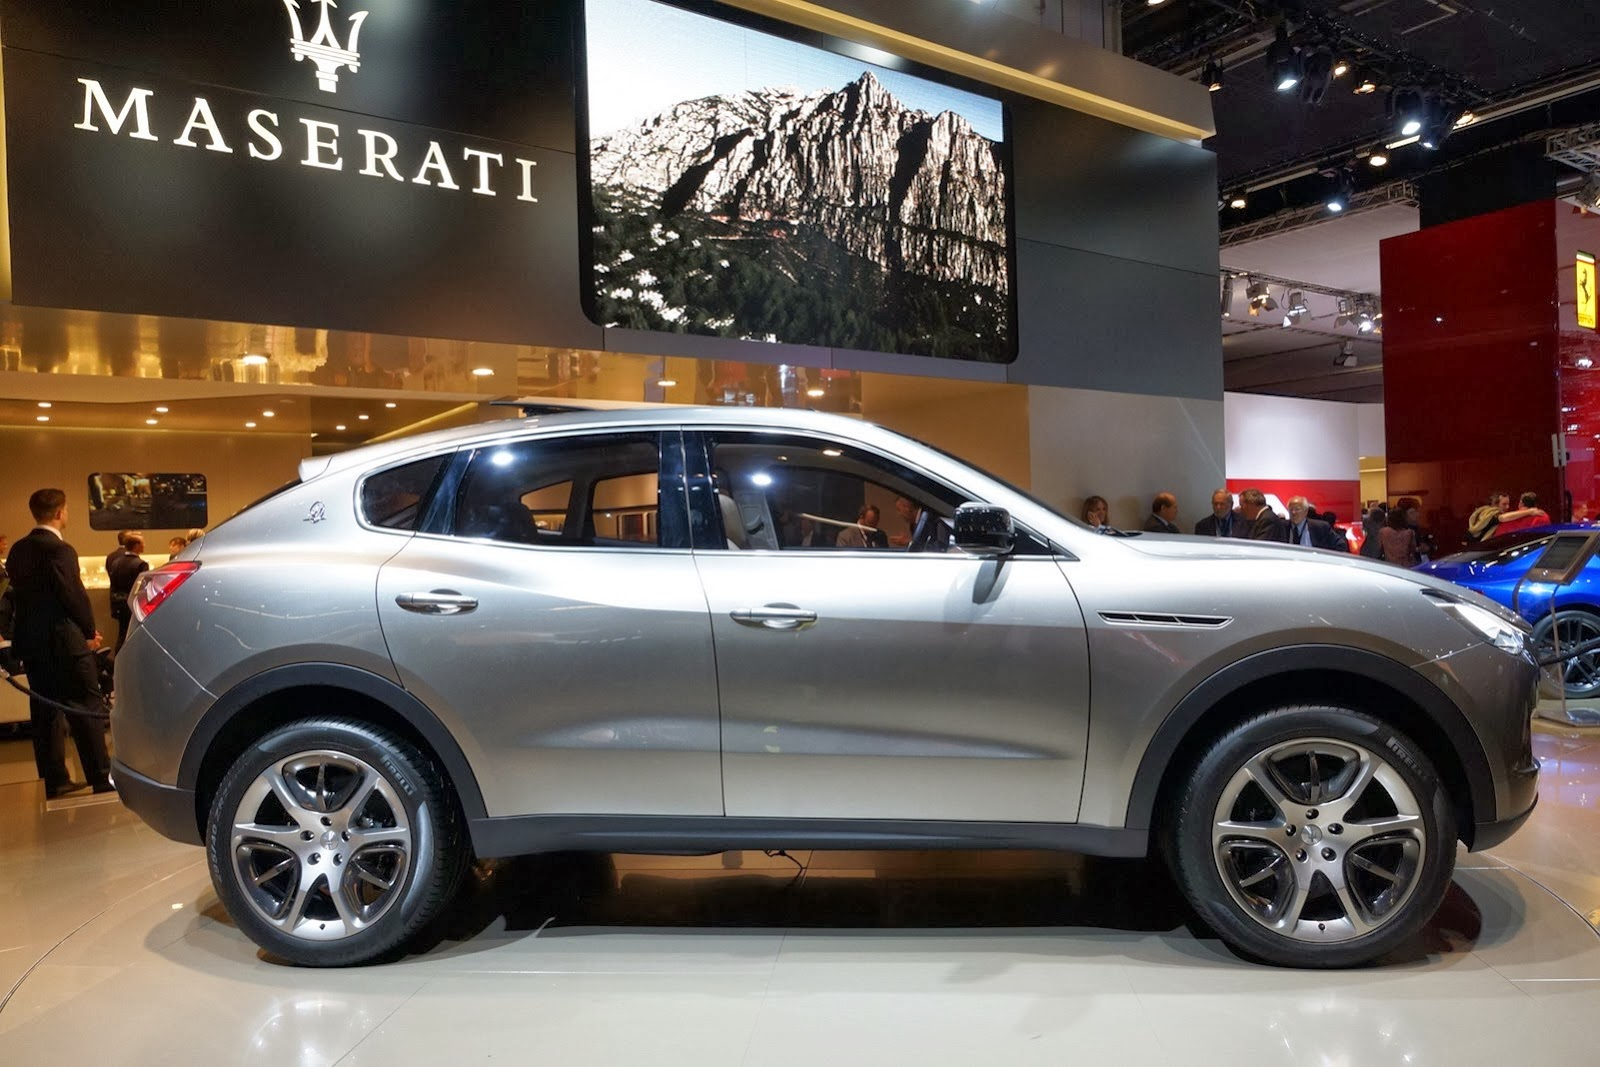 2016 maserati levante suv archives suv news and analysis suv news and analysis. Black Bedroom Furniture Sets. Home Design Ideas